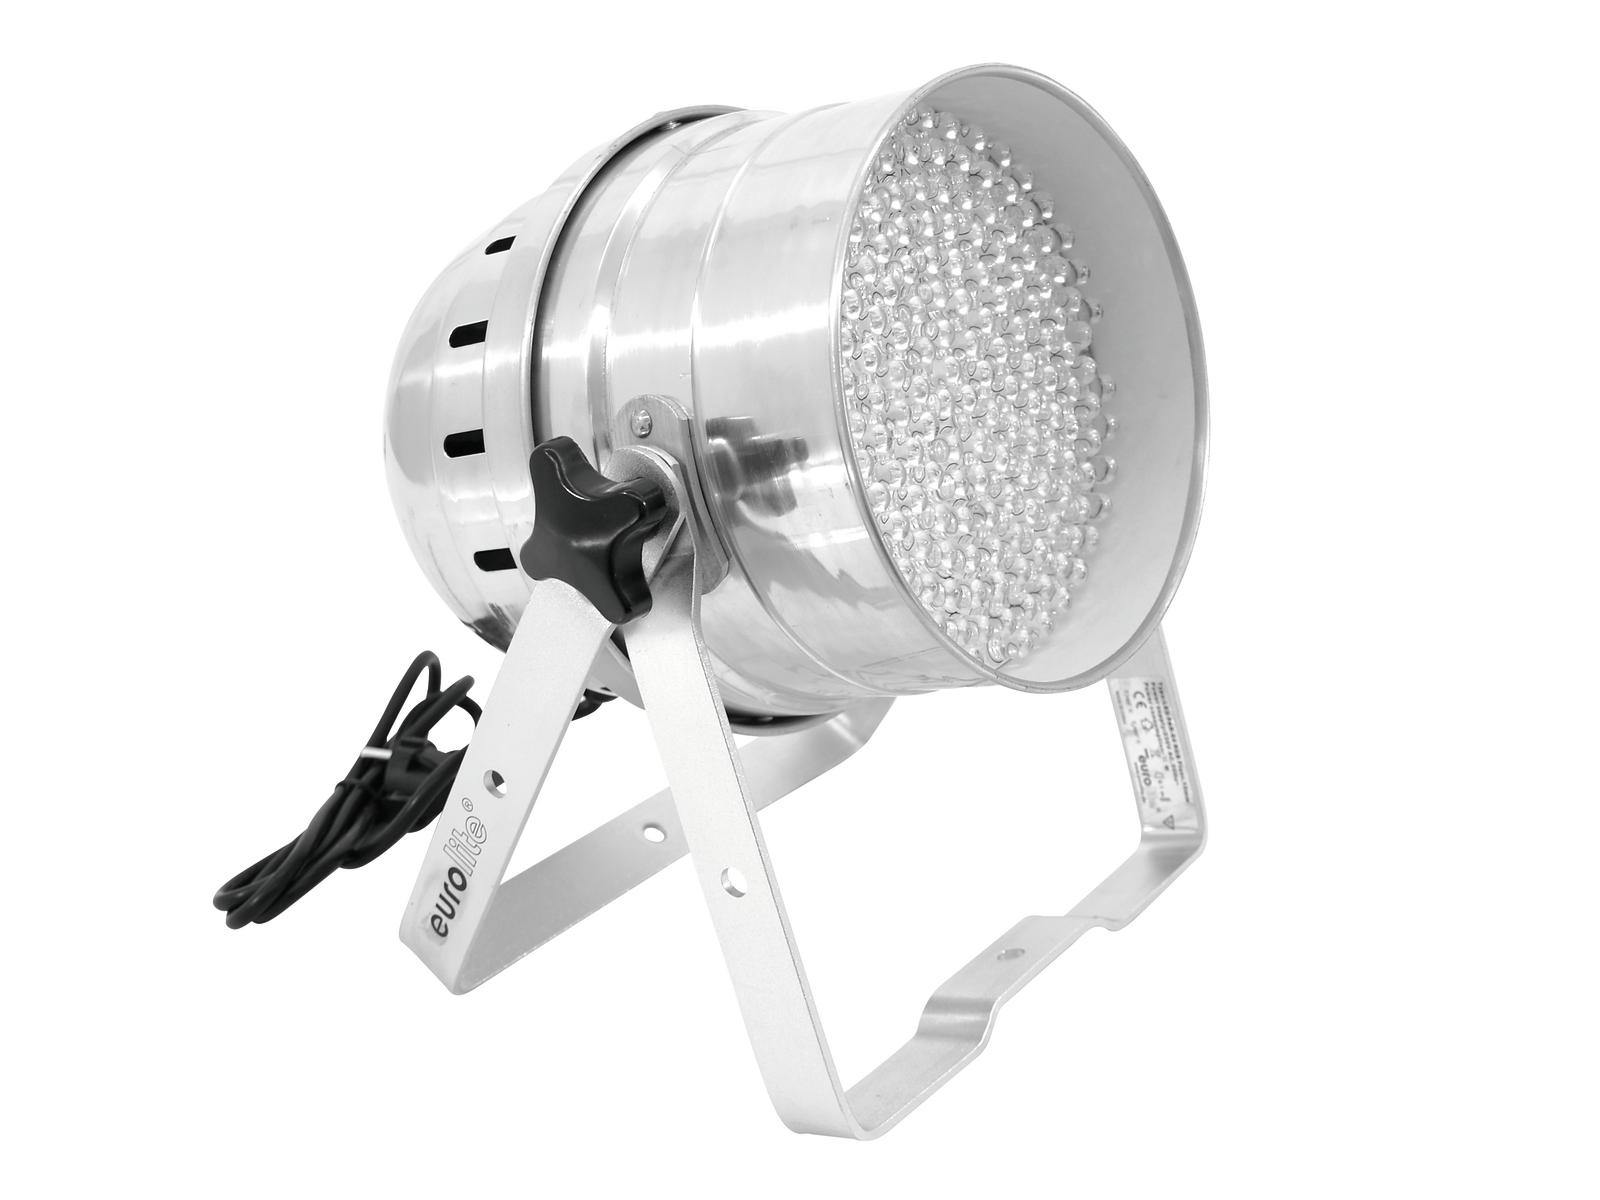 EUROLITE LED PAR-64 RGB 10mm P